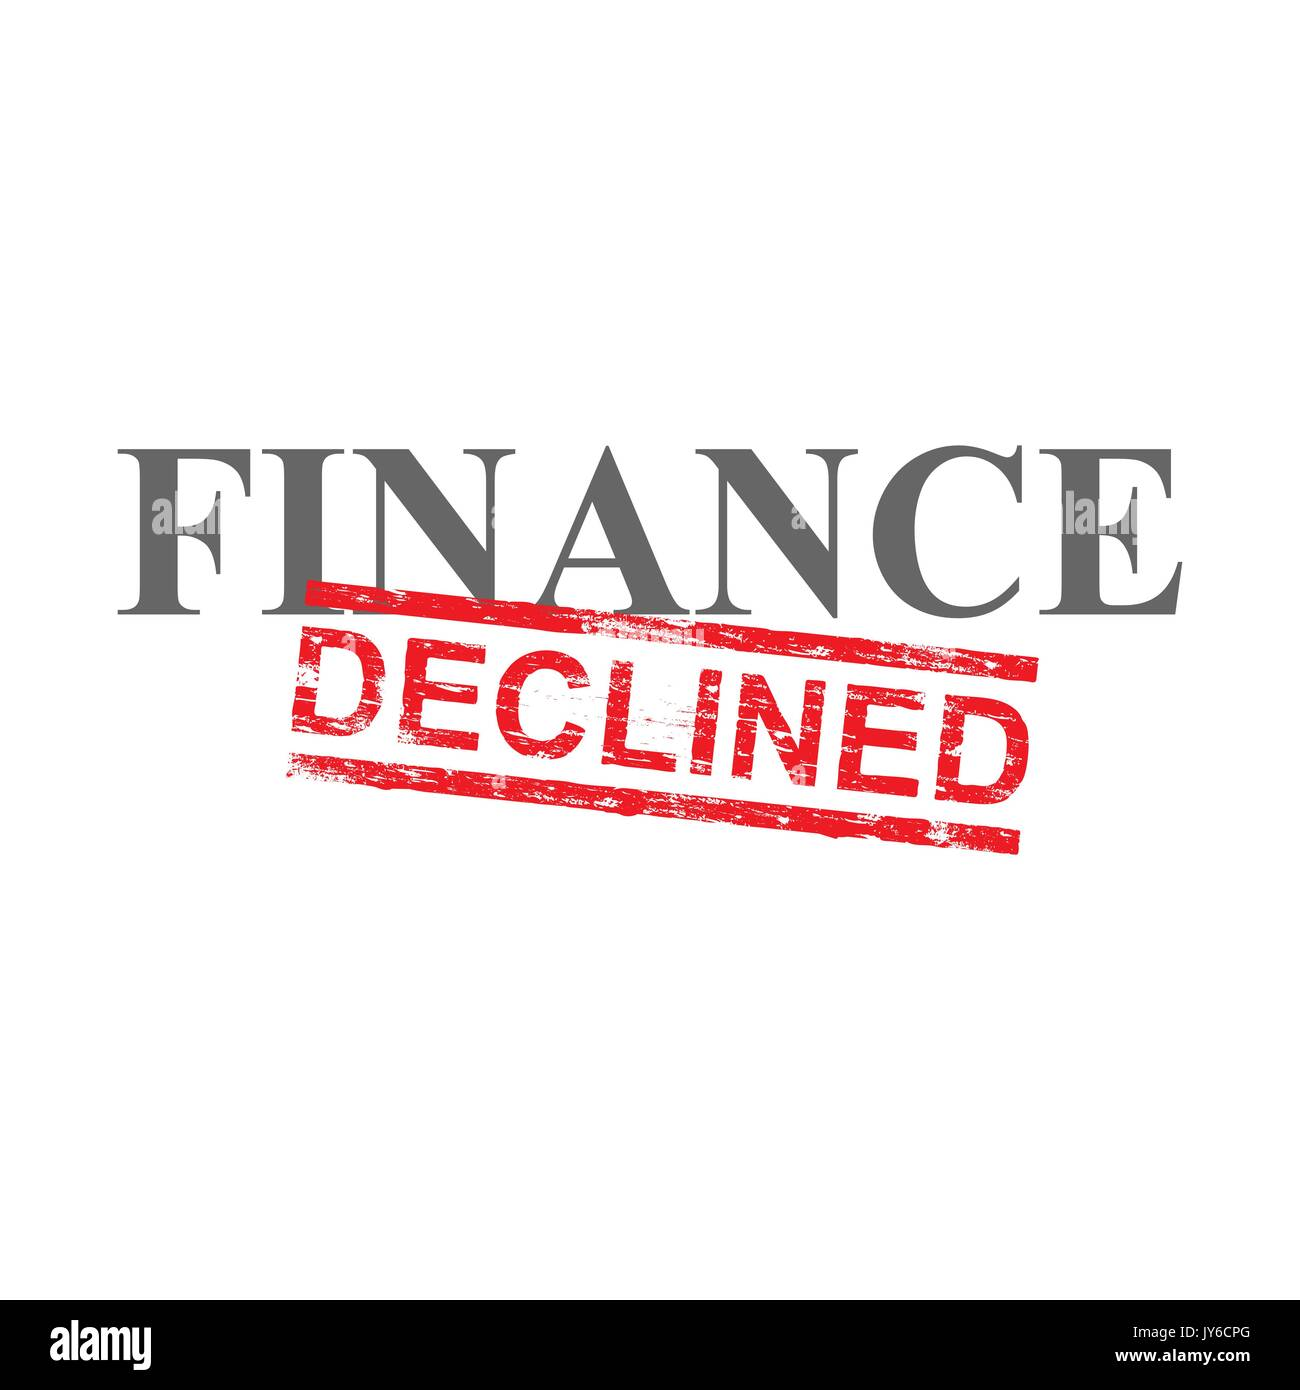 Declined grungy red rubber stamp over finance word illustration - Stock Vector